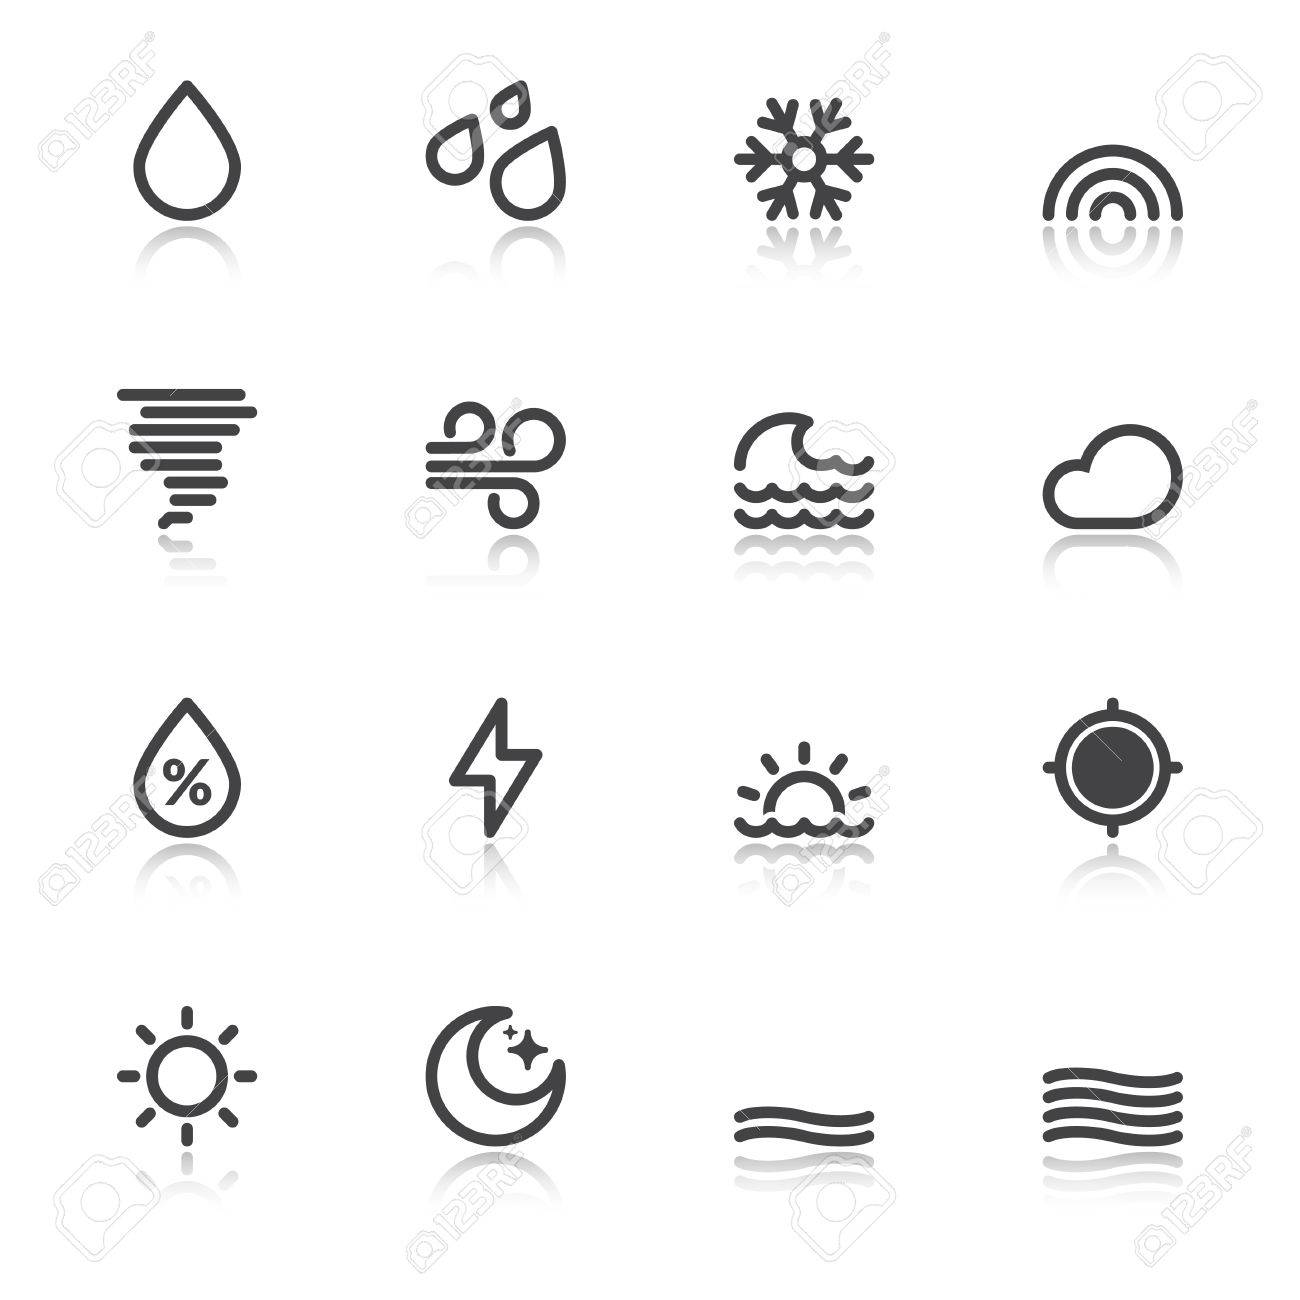 Black Icons With Reflection About The Weather Forecast Symbols